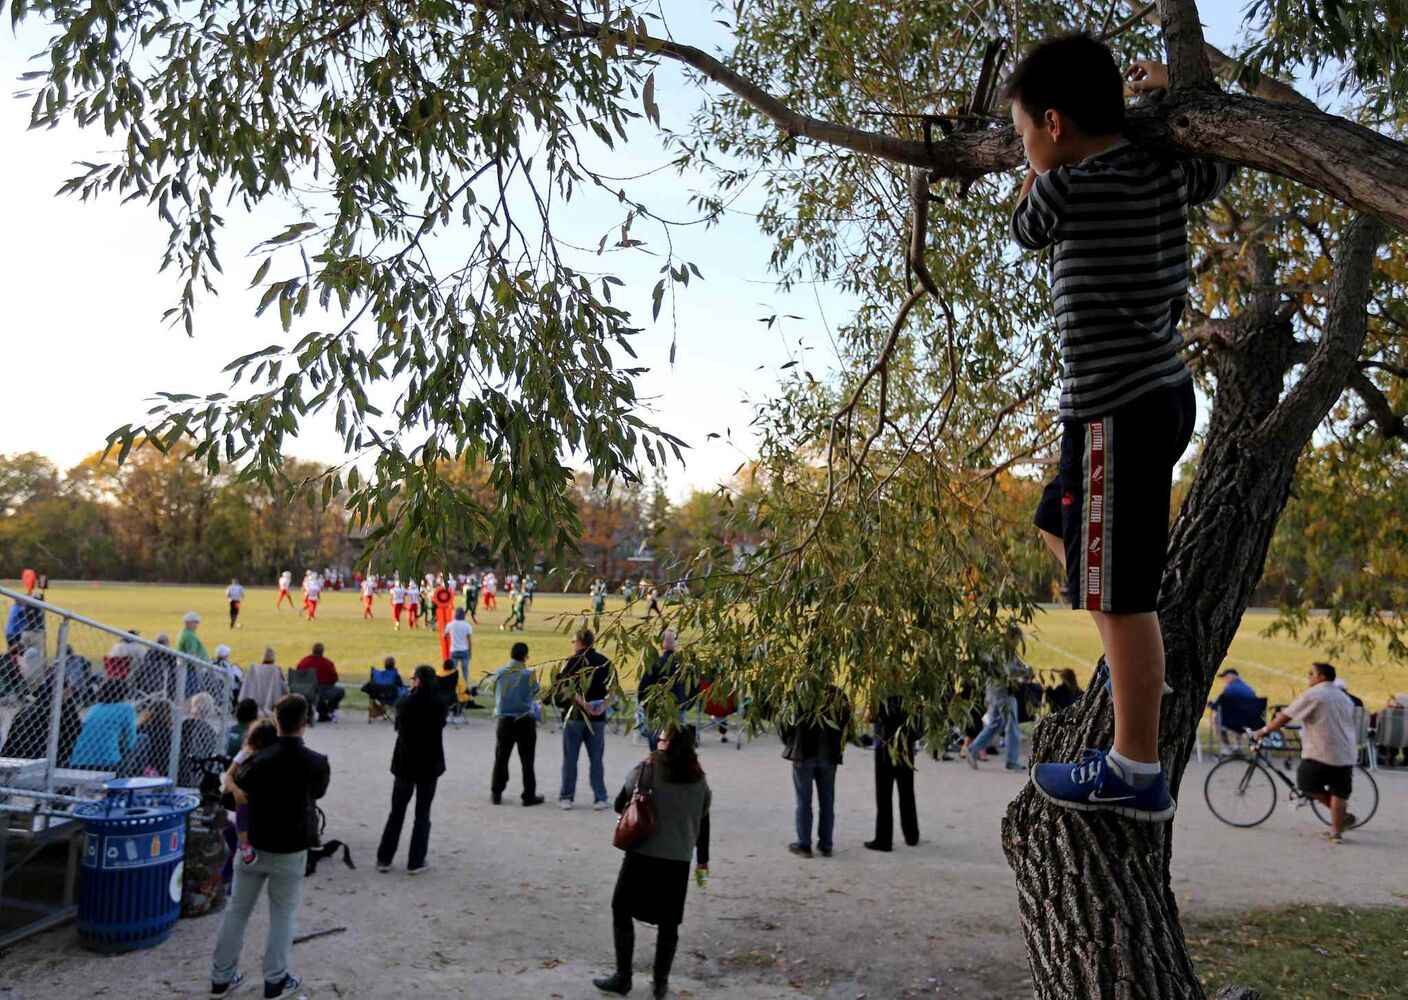 Oliver, 11, watches from a tree as his brother, who plays for the Kelvin Clippers, takes to the field. (TREVOR HAGAN / WINNIPEG FREE PRESS)